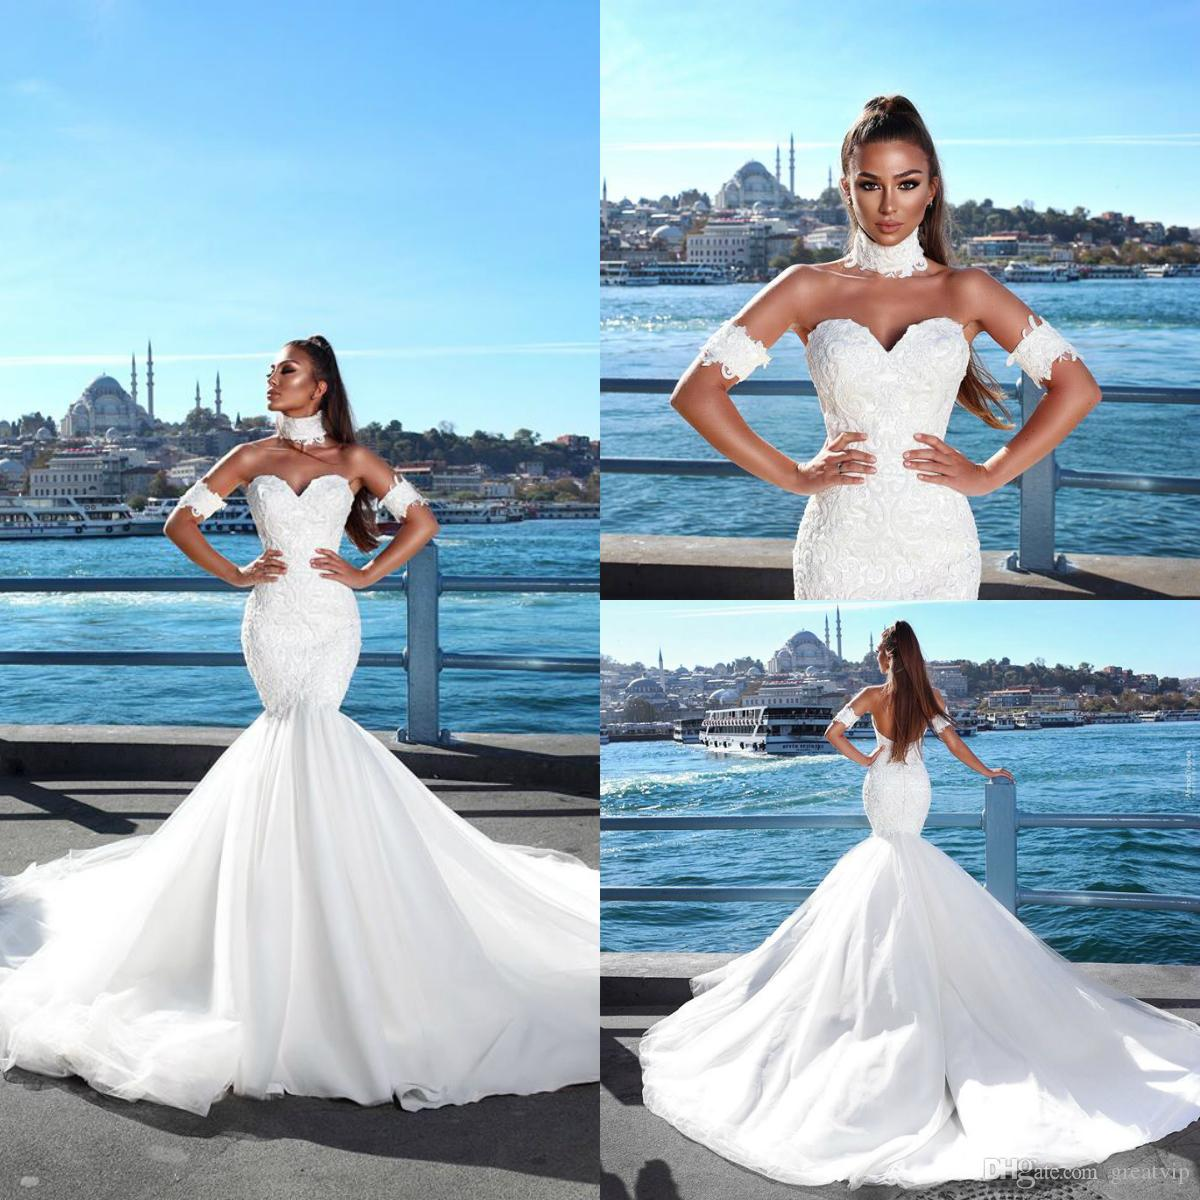 2019 Beach Mermaid Wedding Dresses With Armband Necklet Sweetheart Lace  Backless Sweep Train Bridal Gowns Plus Size Robe De Mariée Wedding Dress  Wholesale ... 05d8167a6765